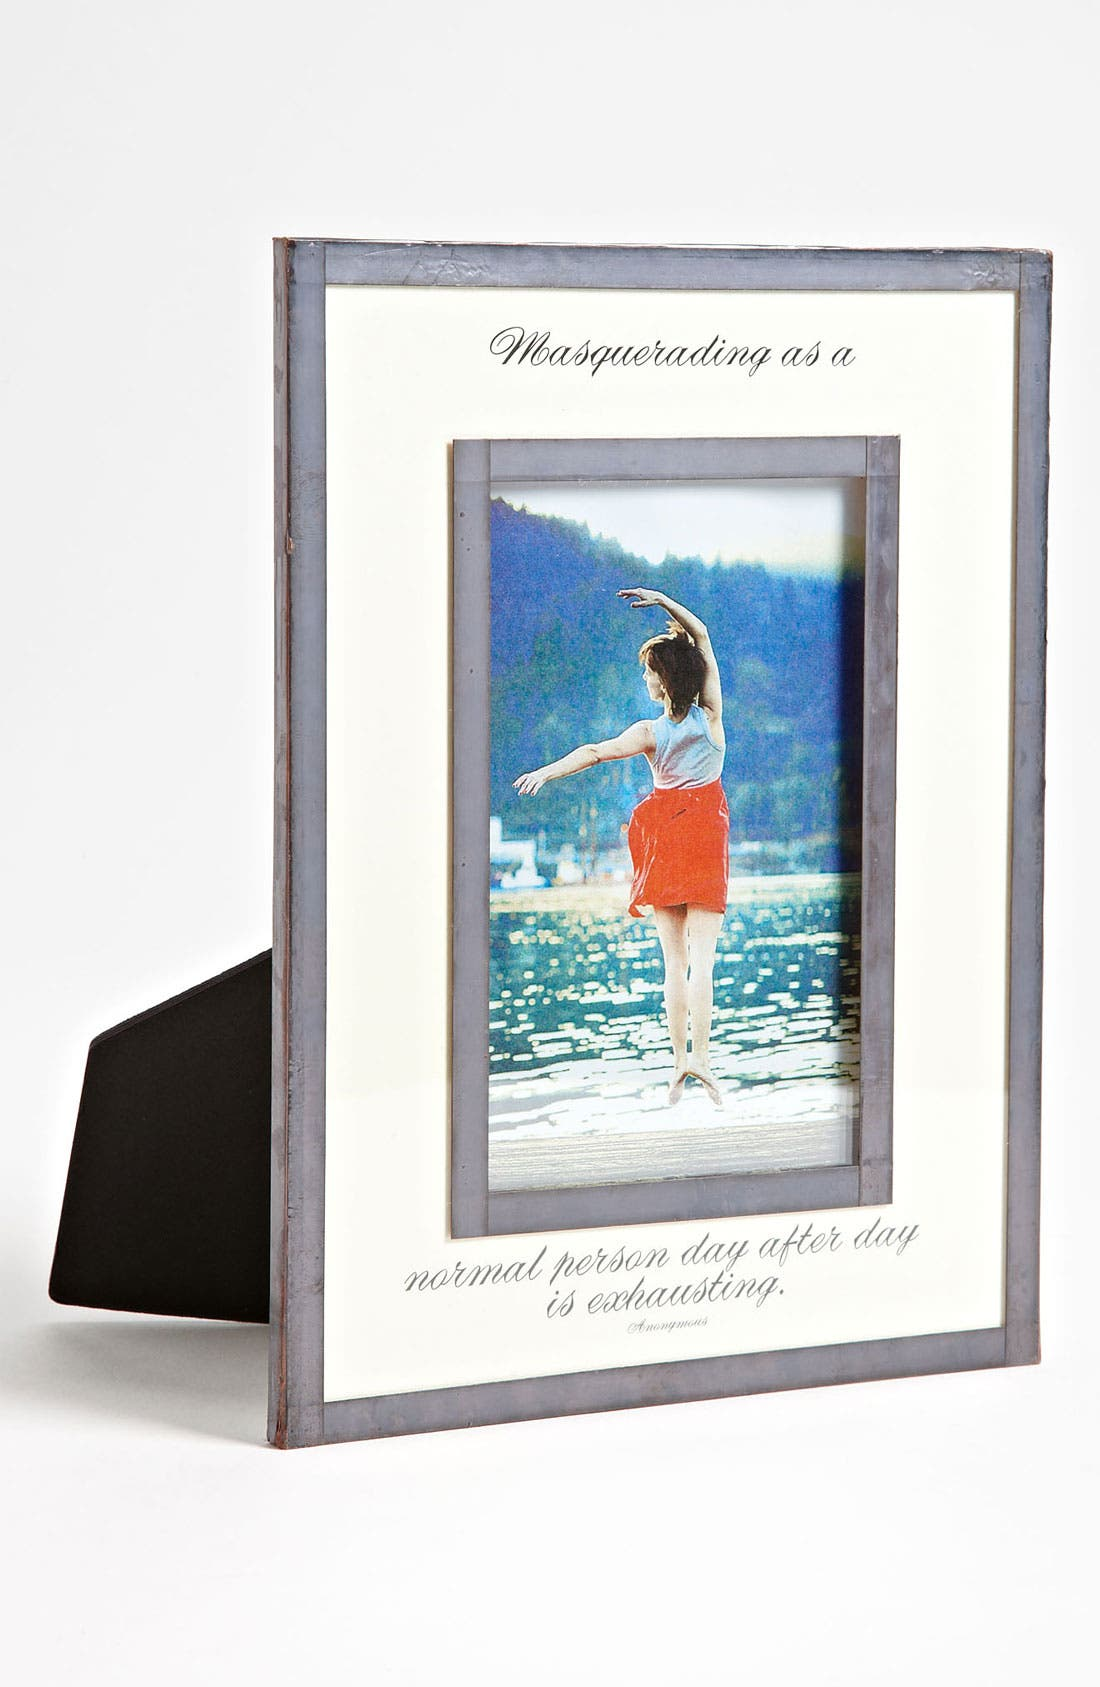 Alternate Image 1 Selected - Ben's Garden 'Masquerading' Picture Frame (4x6)